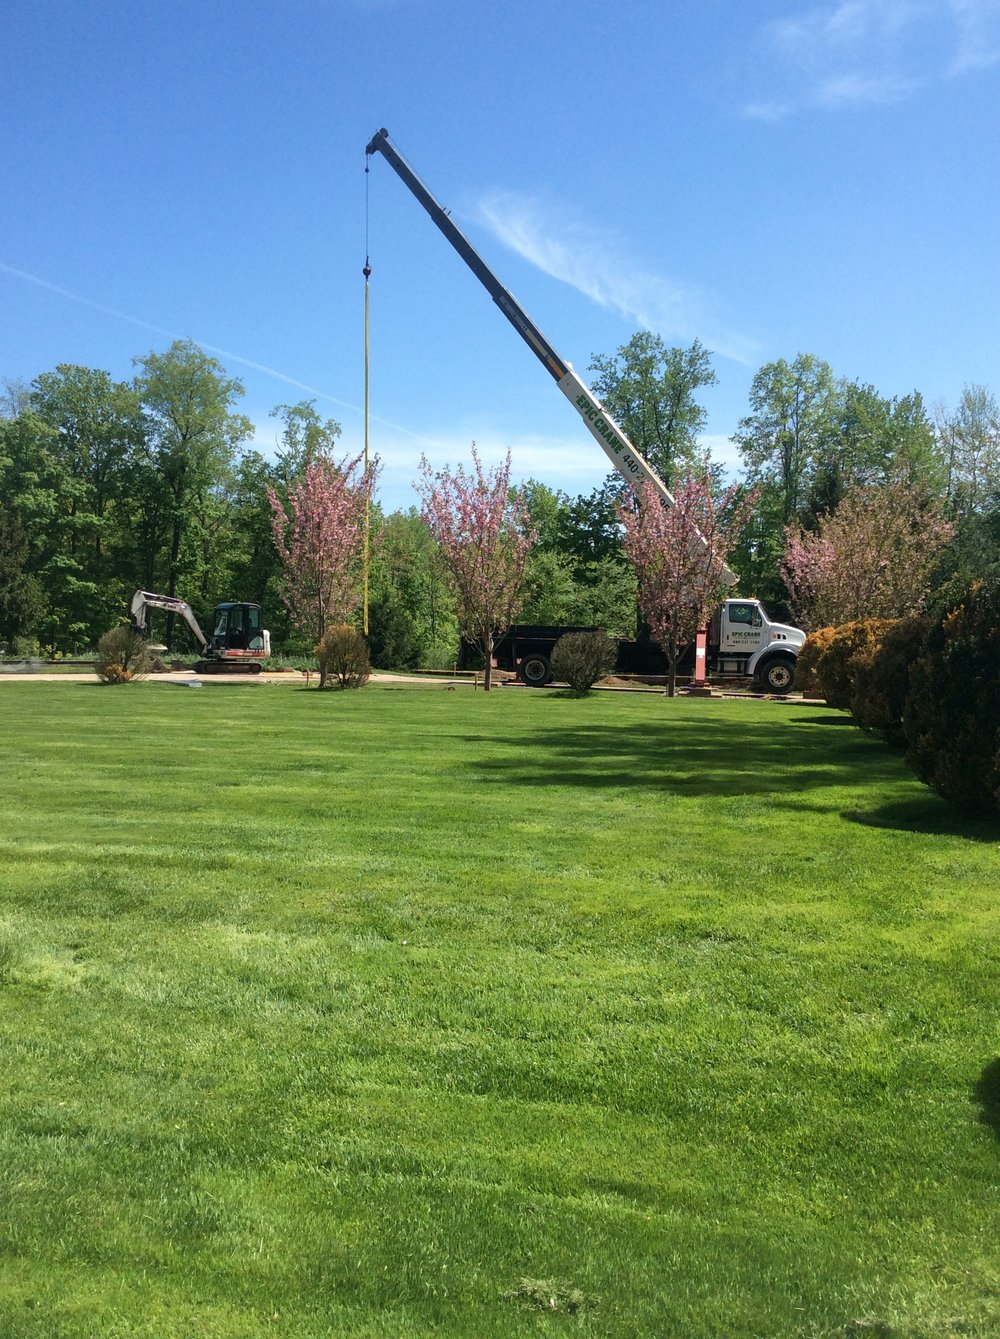 Lawn care and aeration company in Hudson, Ohio